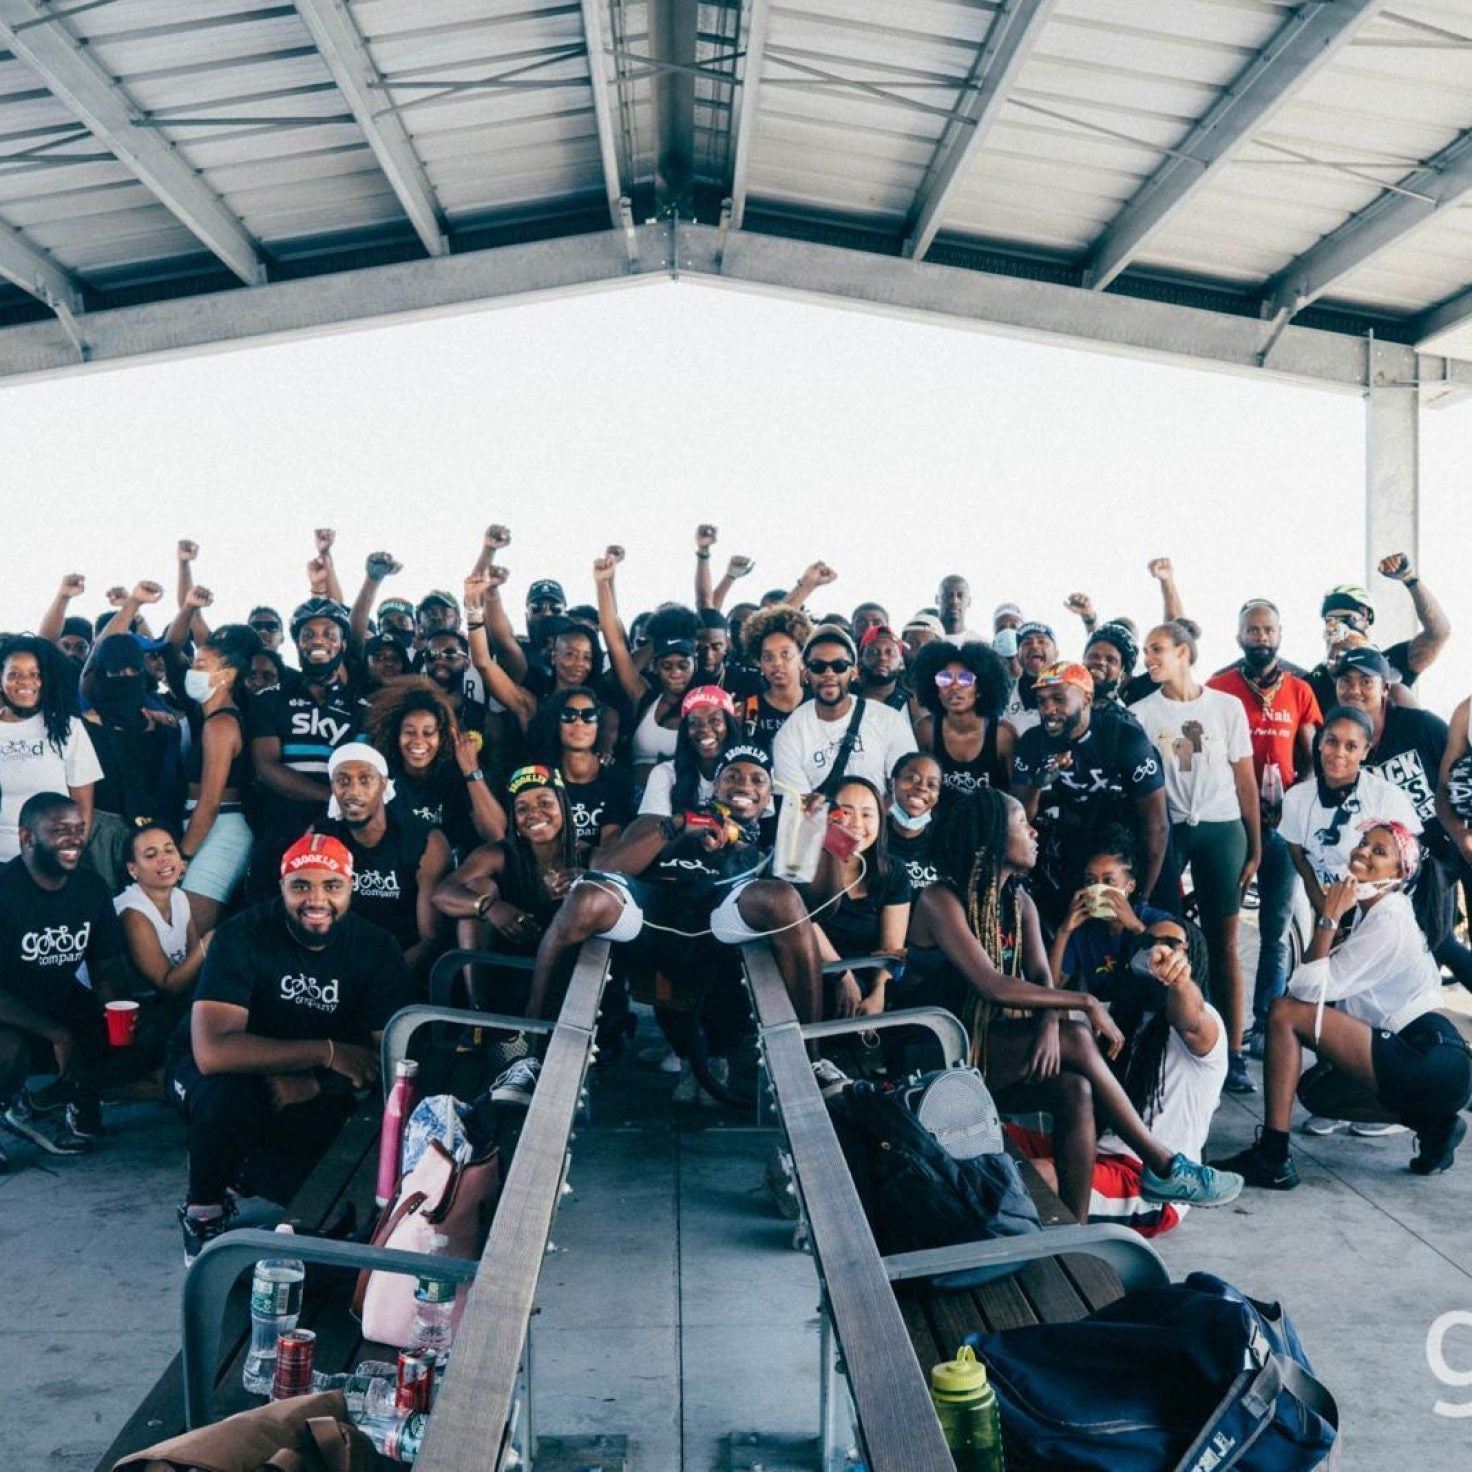 Black Joy On Wheels: Brooklyn Friends Launch A Pandemic Bike Club And A Powerful Movement